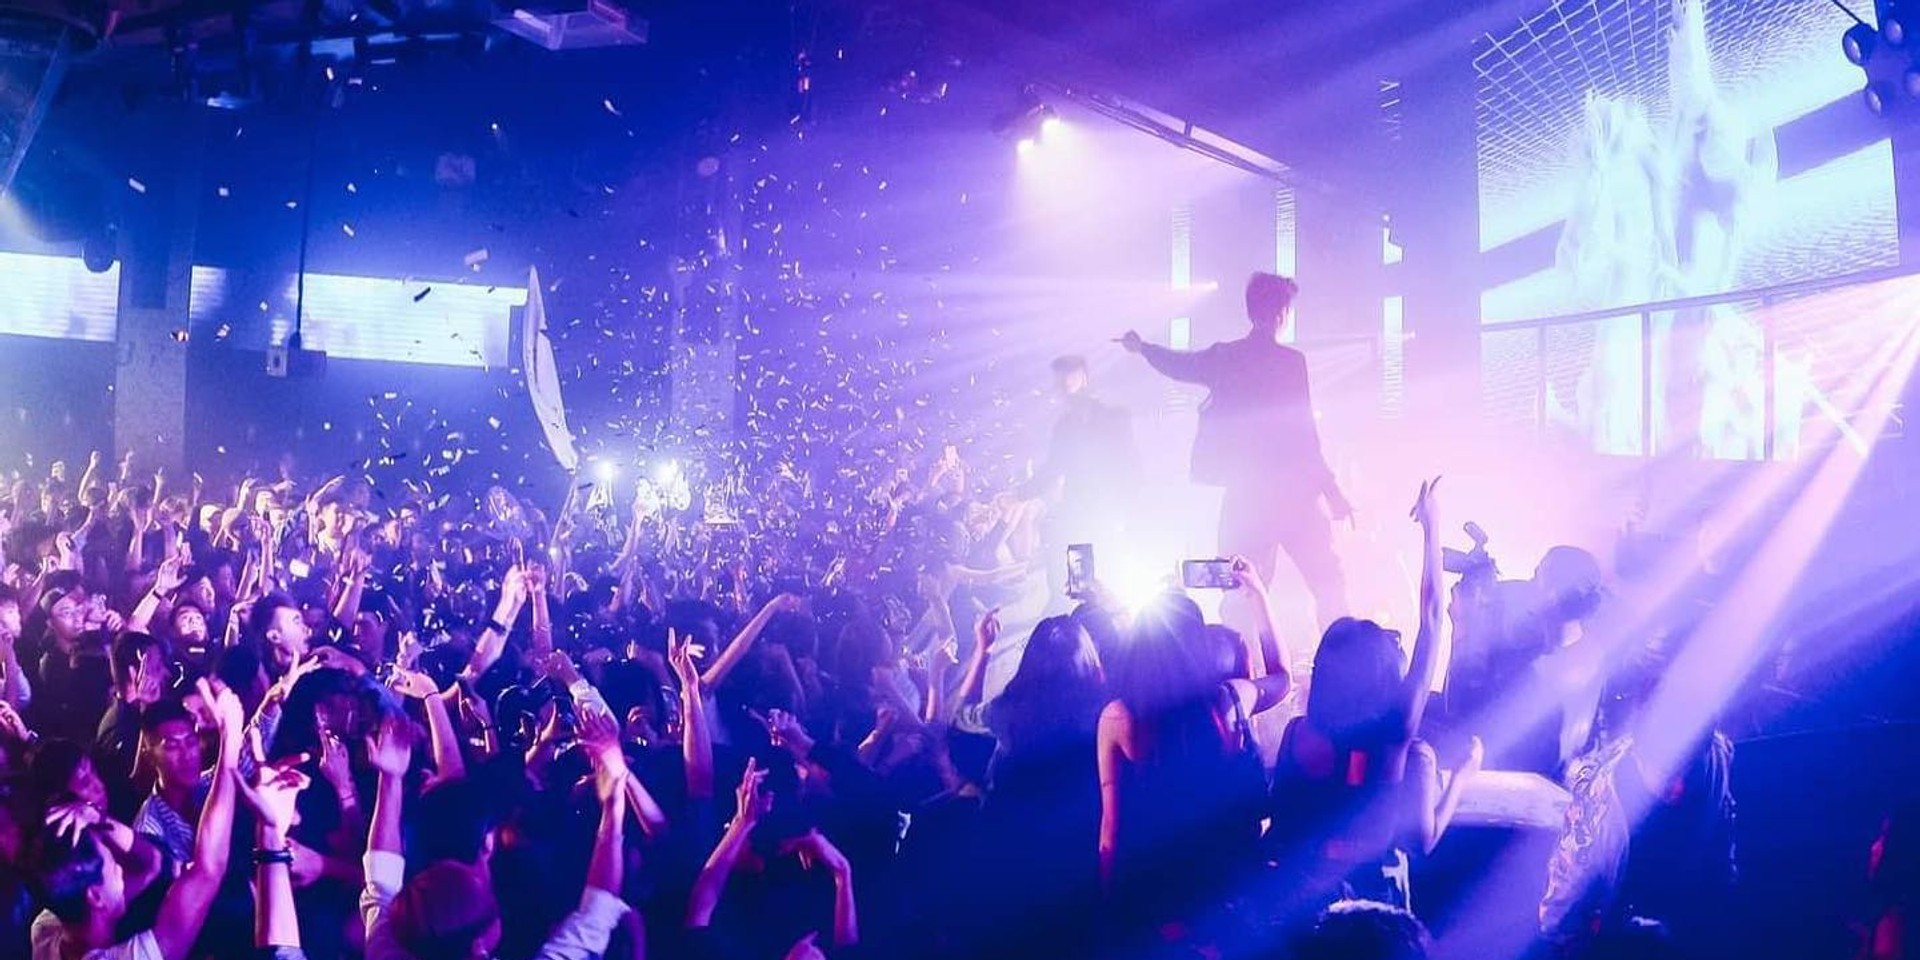 """Zouk lends dance floor to create """"experience like no other"""" for Absolute Cycle's spinning classes"""